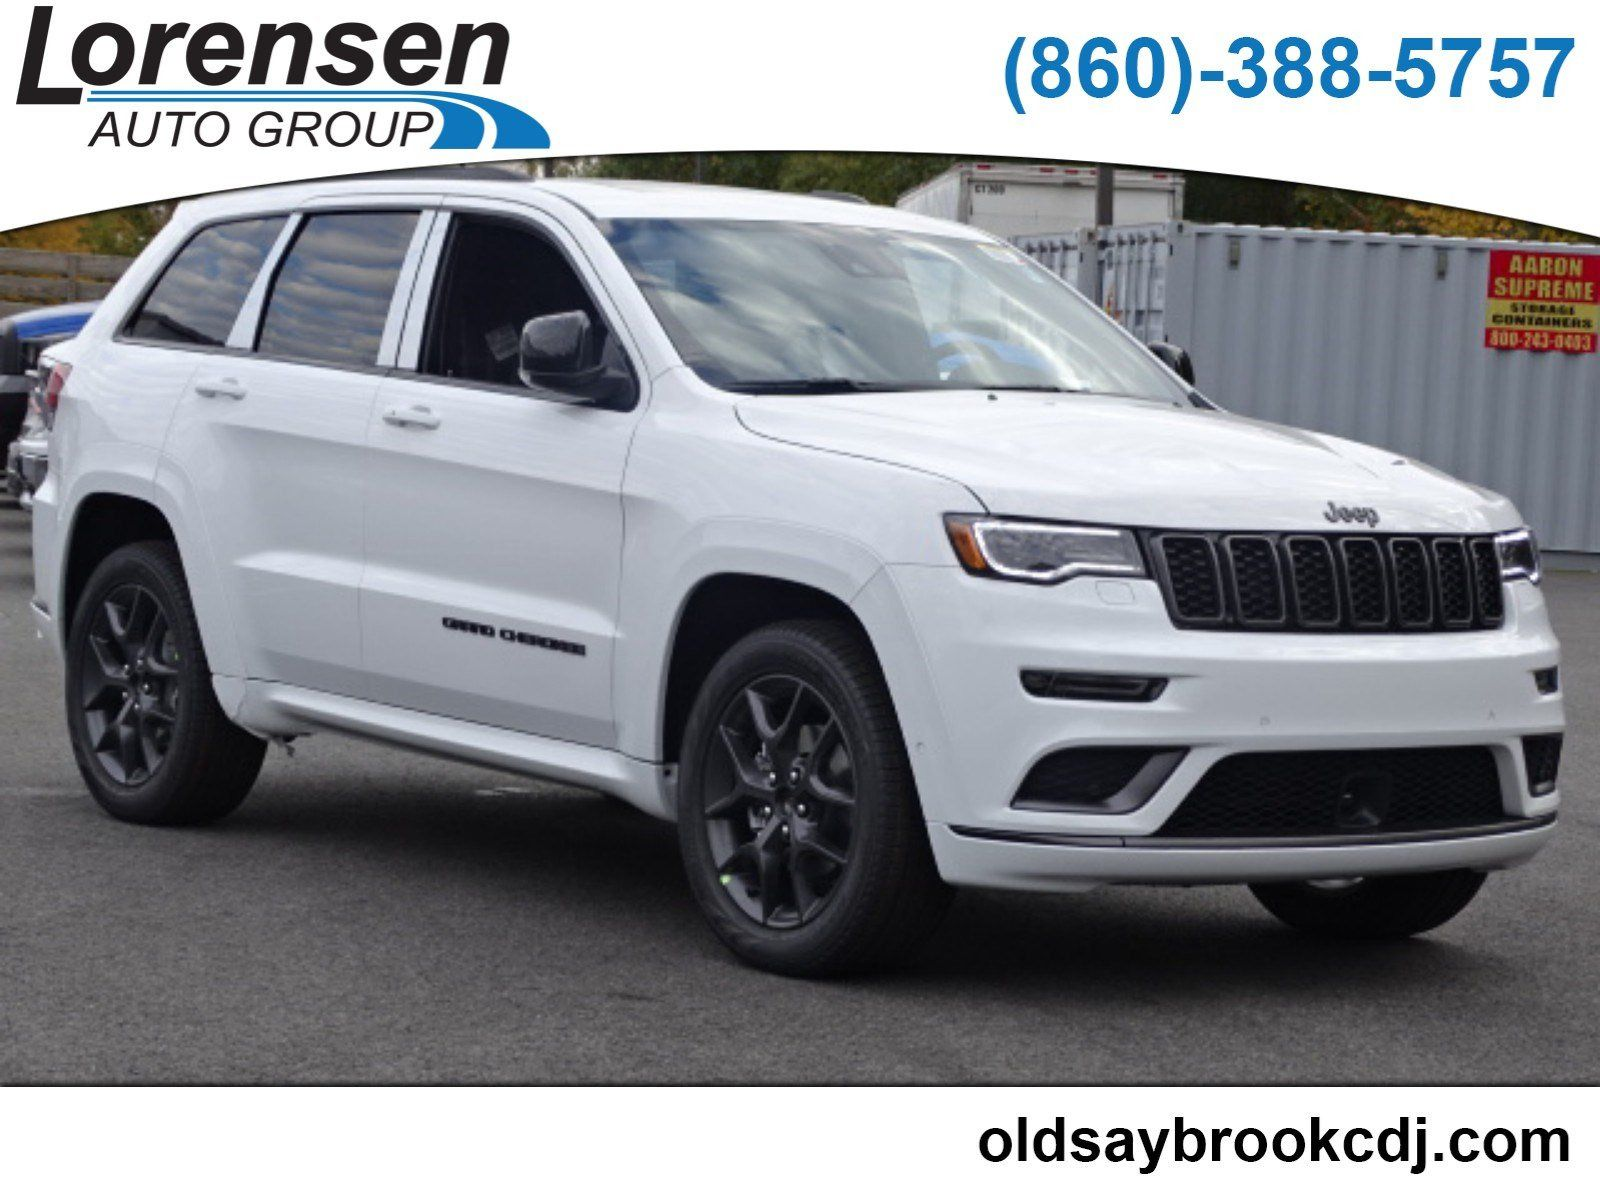 Jeep Grand Cherokee 2019 Check More At Http Www New Cars Club 2018 06 28 Jeep Grand Cherokee 2019